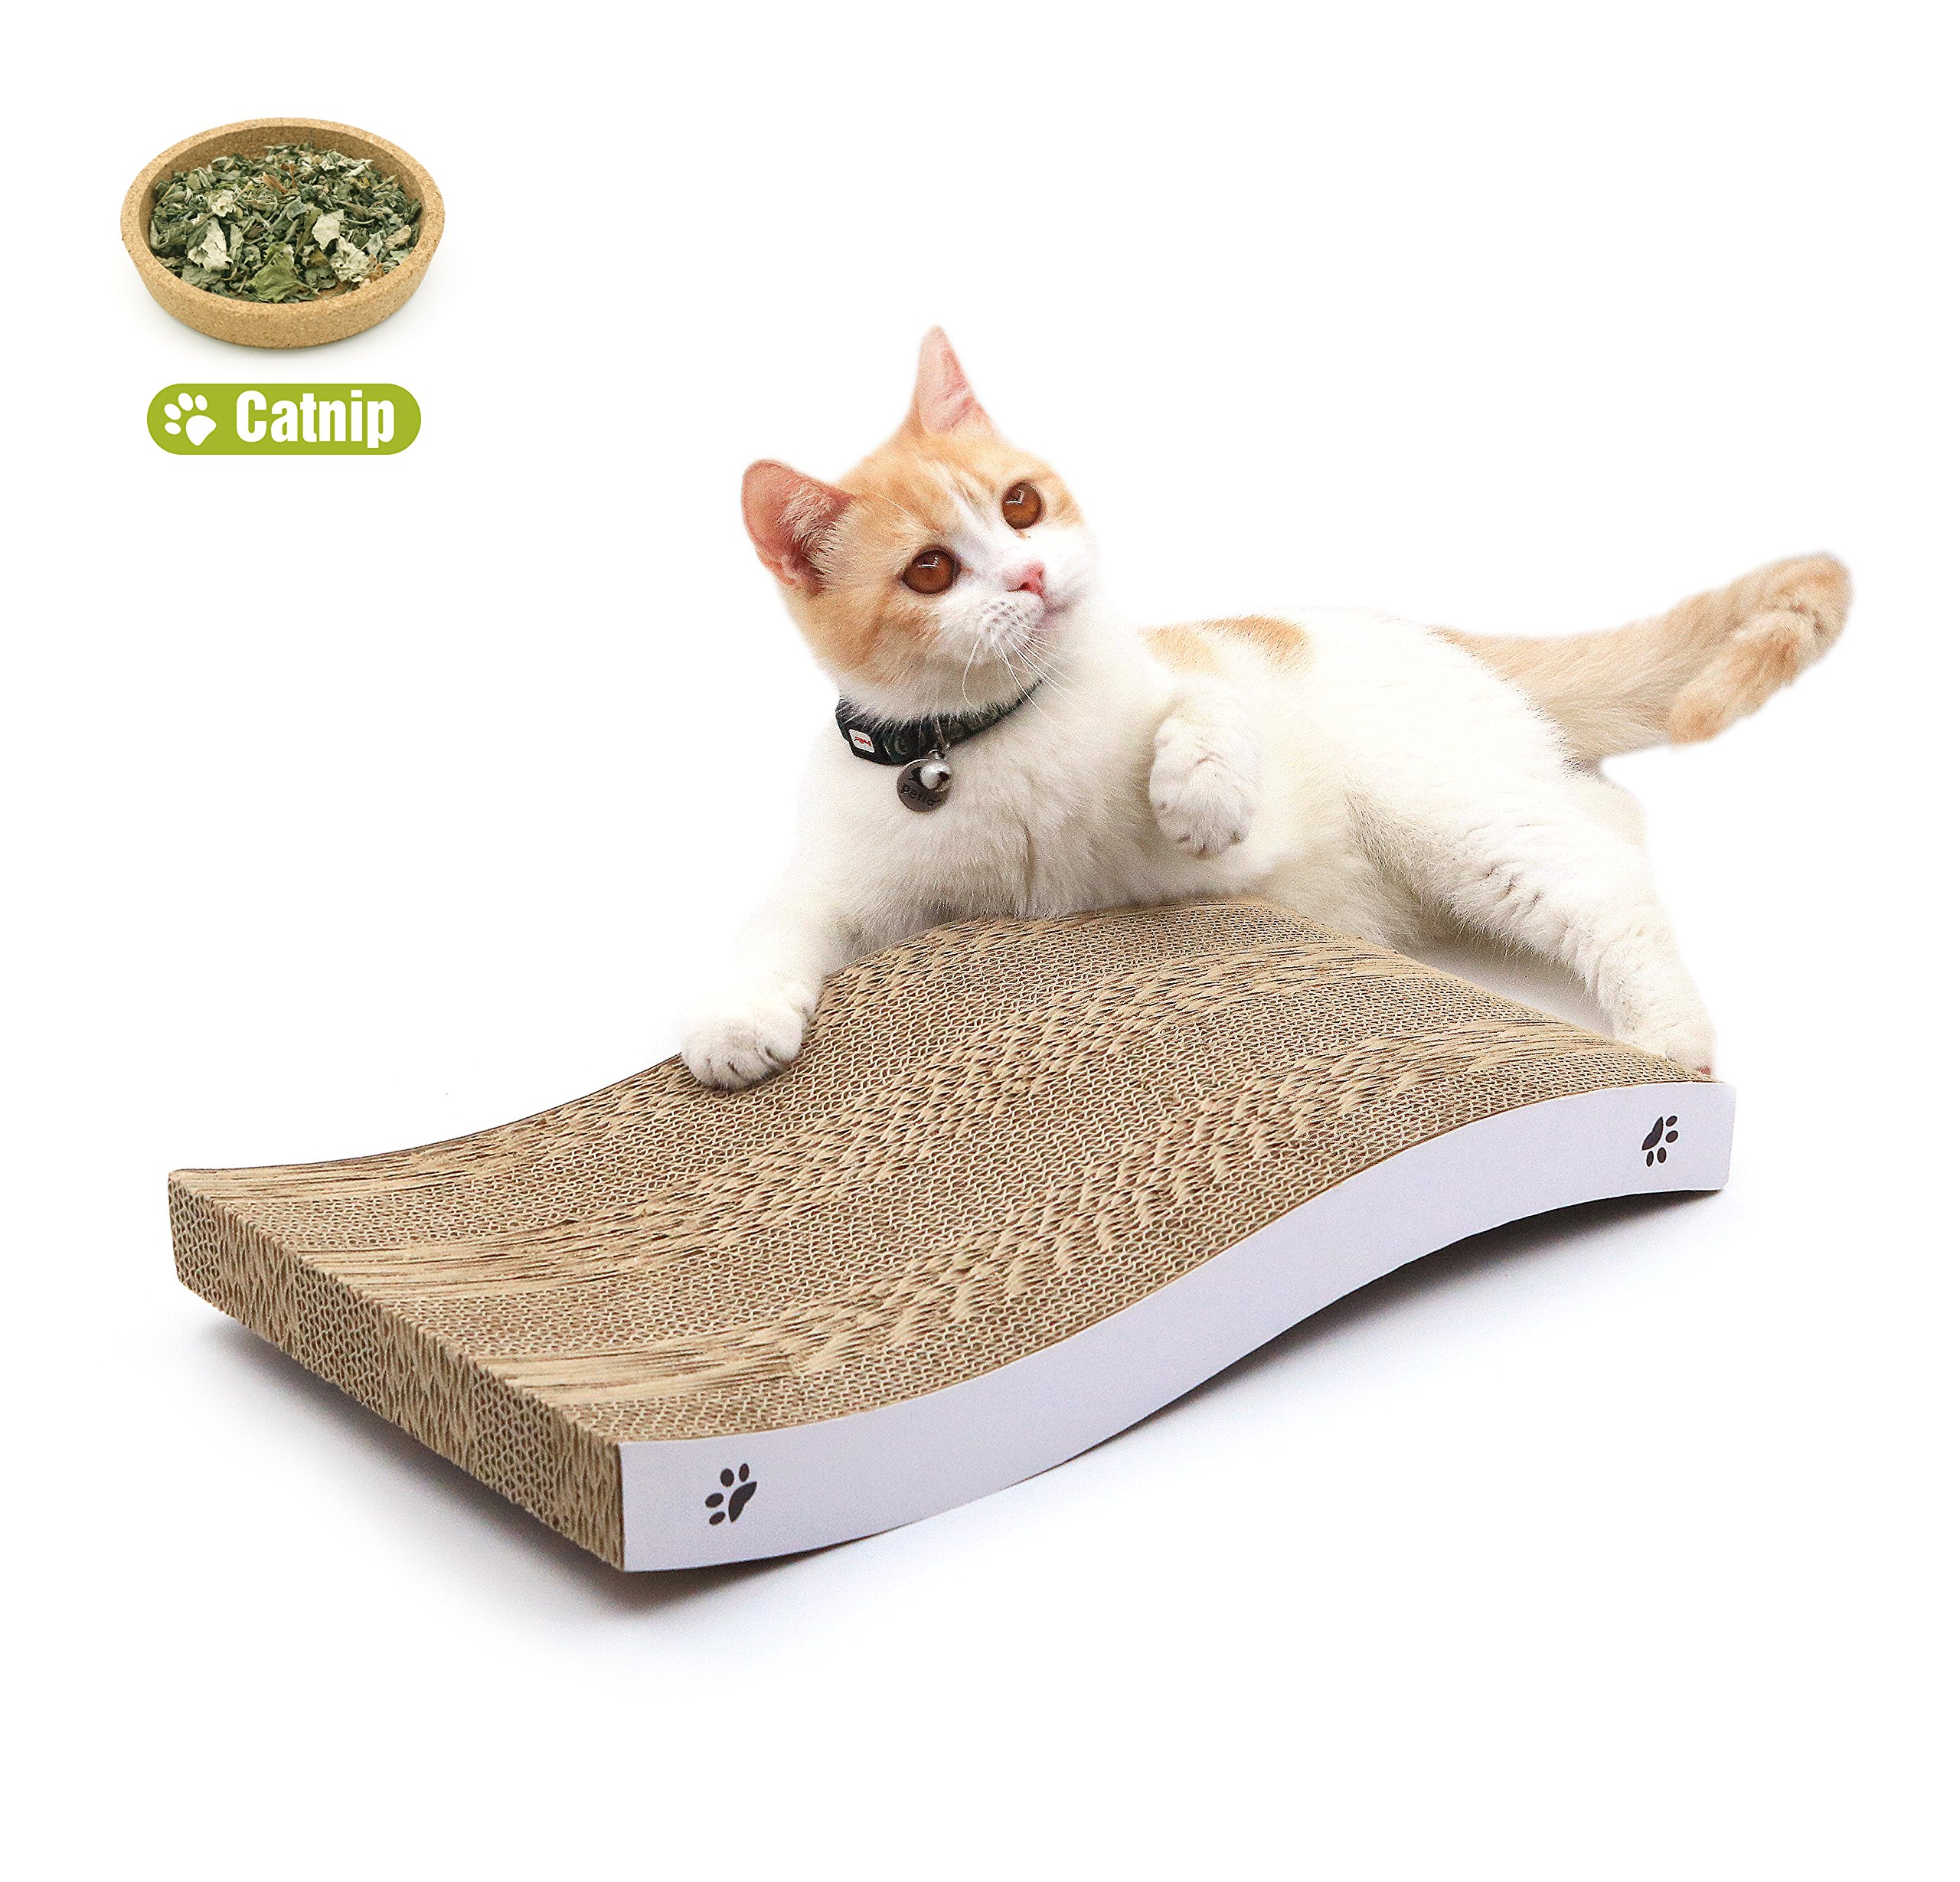 COCHING Cat Scratcher Cardboard Curved Shape Scratch Pad with Unique Two Different Scratch Textures Design Durable Scratching Pad Reversible With Organic Catnip